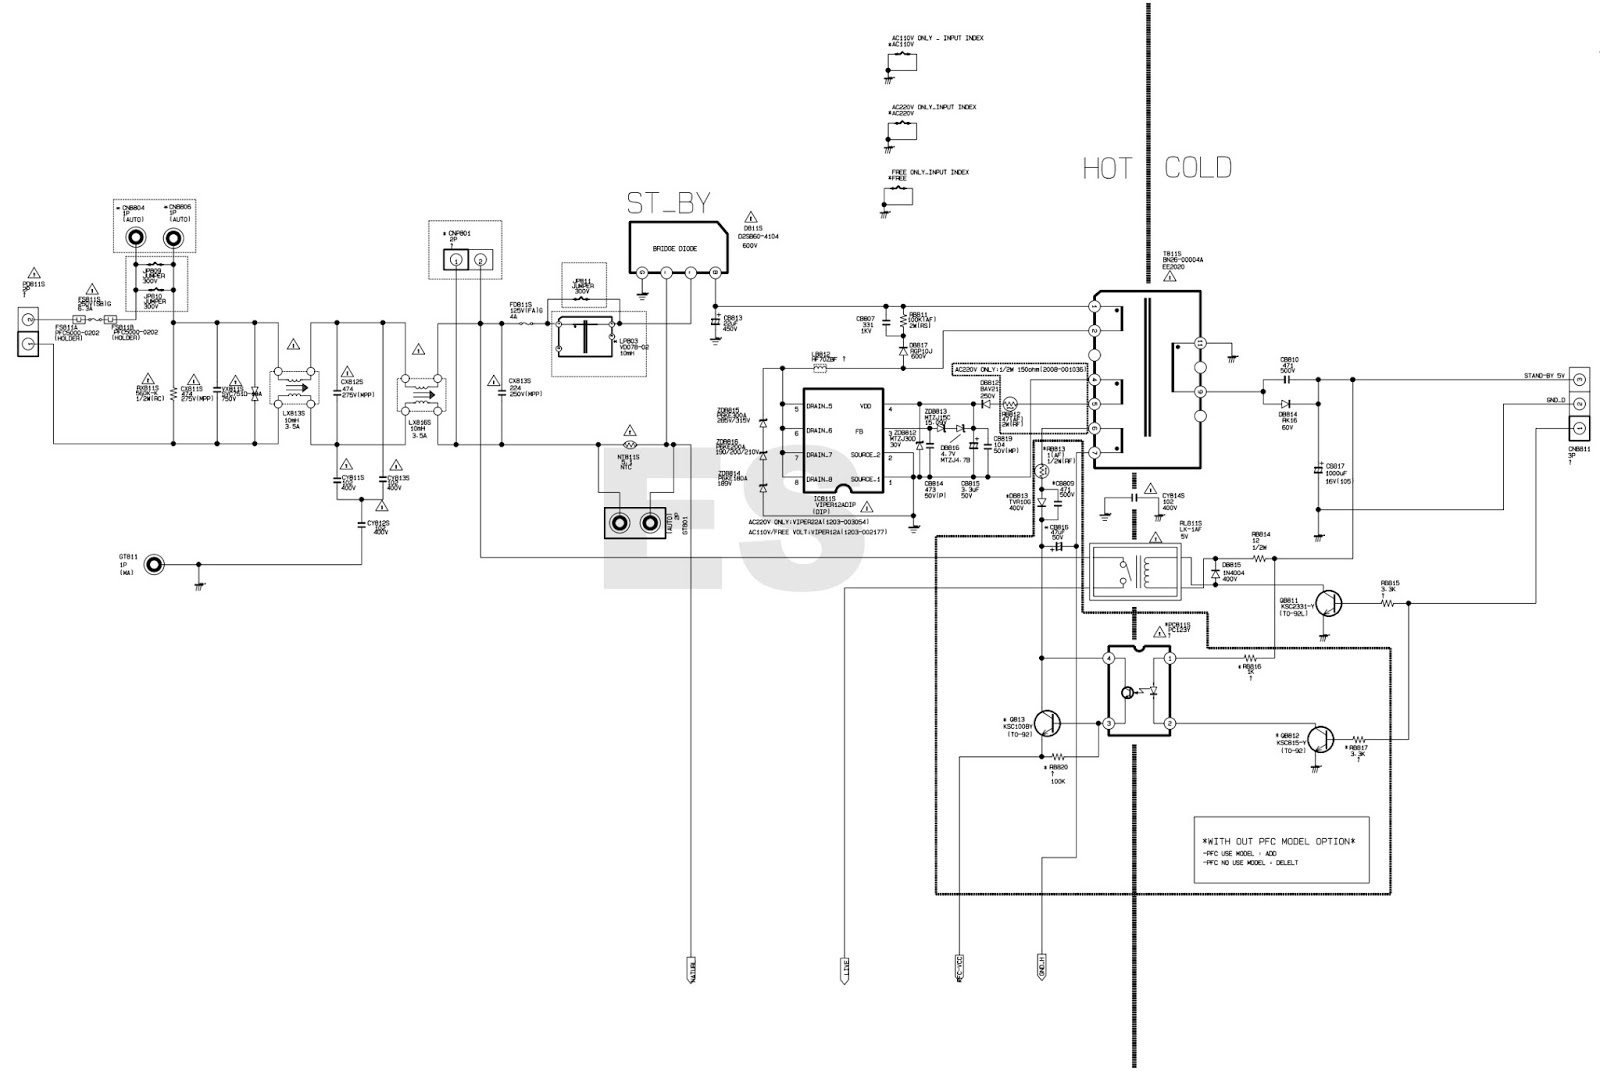 schematic diagram panasonic tv